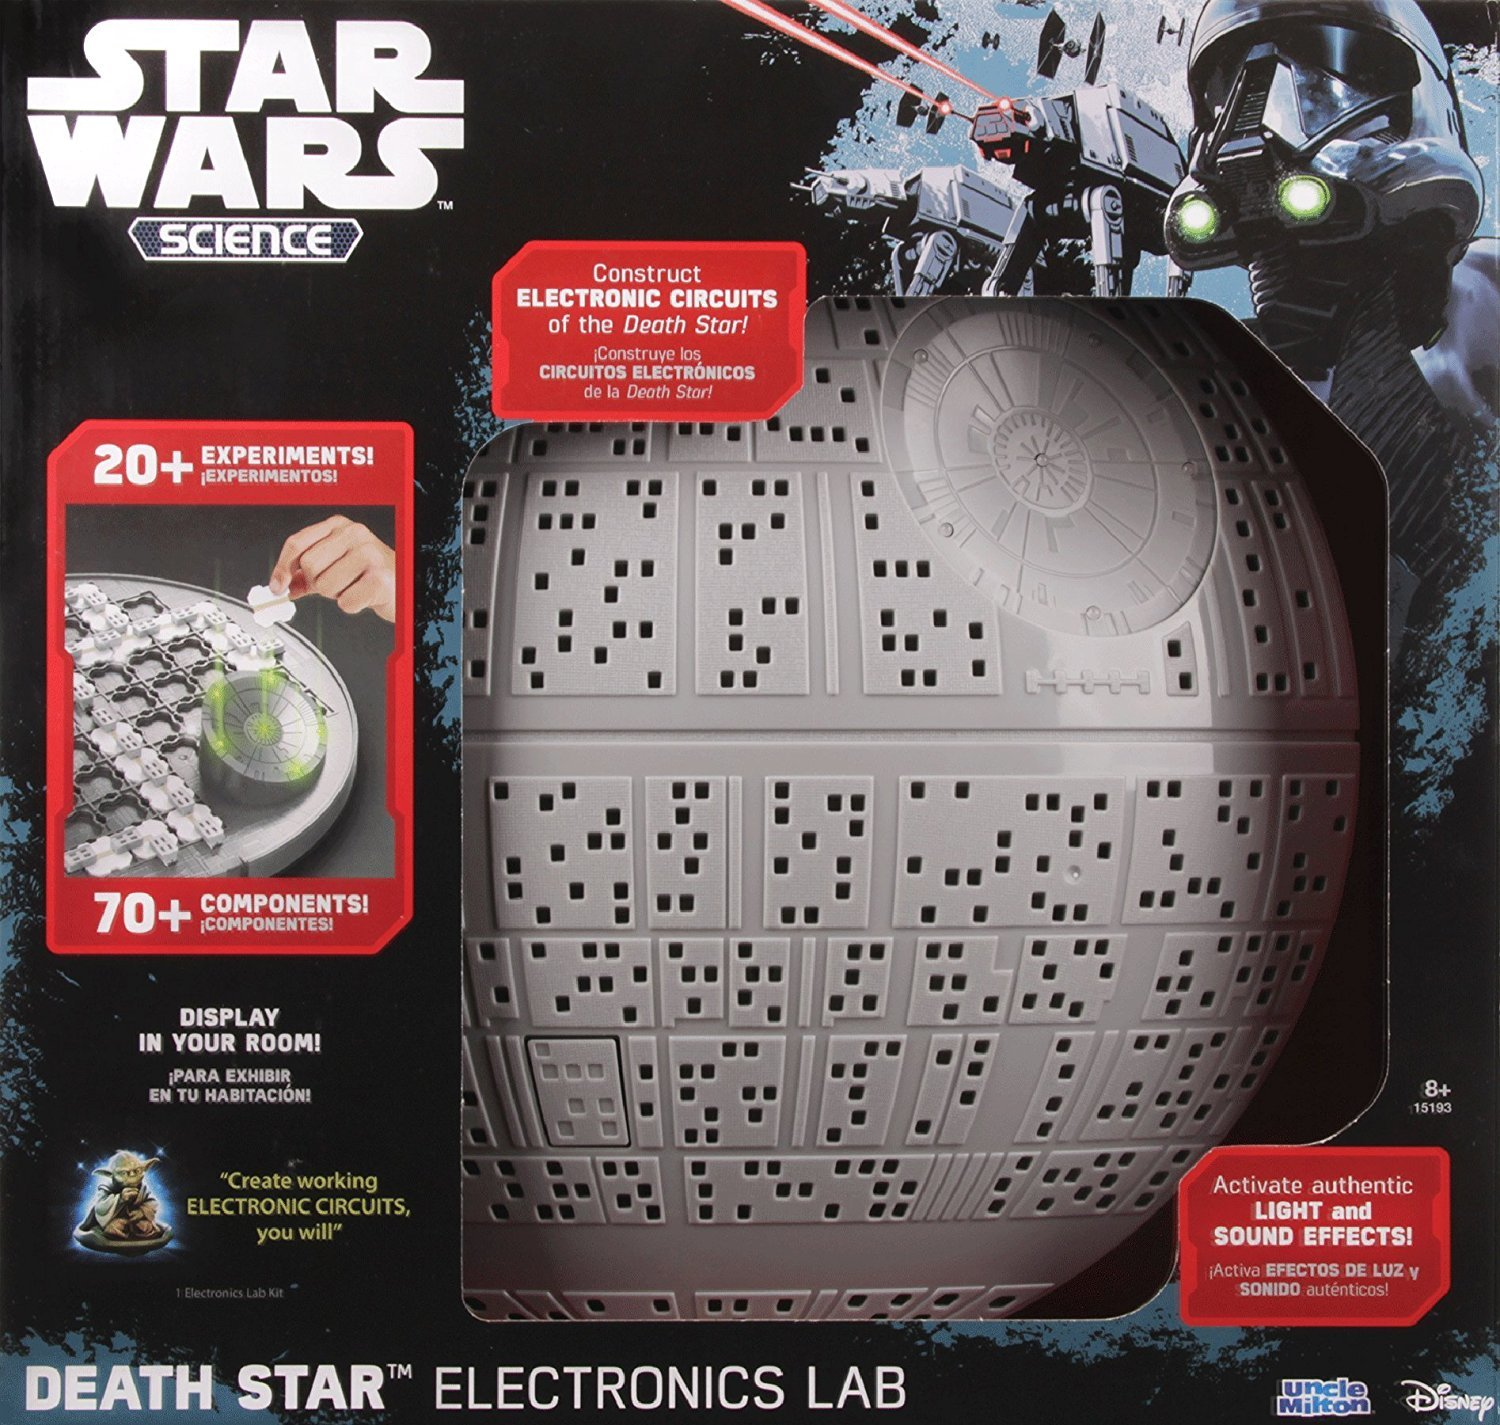 Star Wars: Death Star - Electronics Lab image